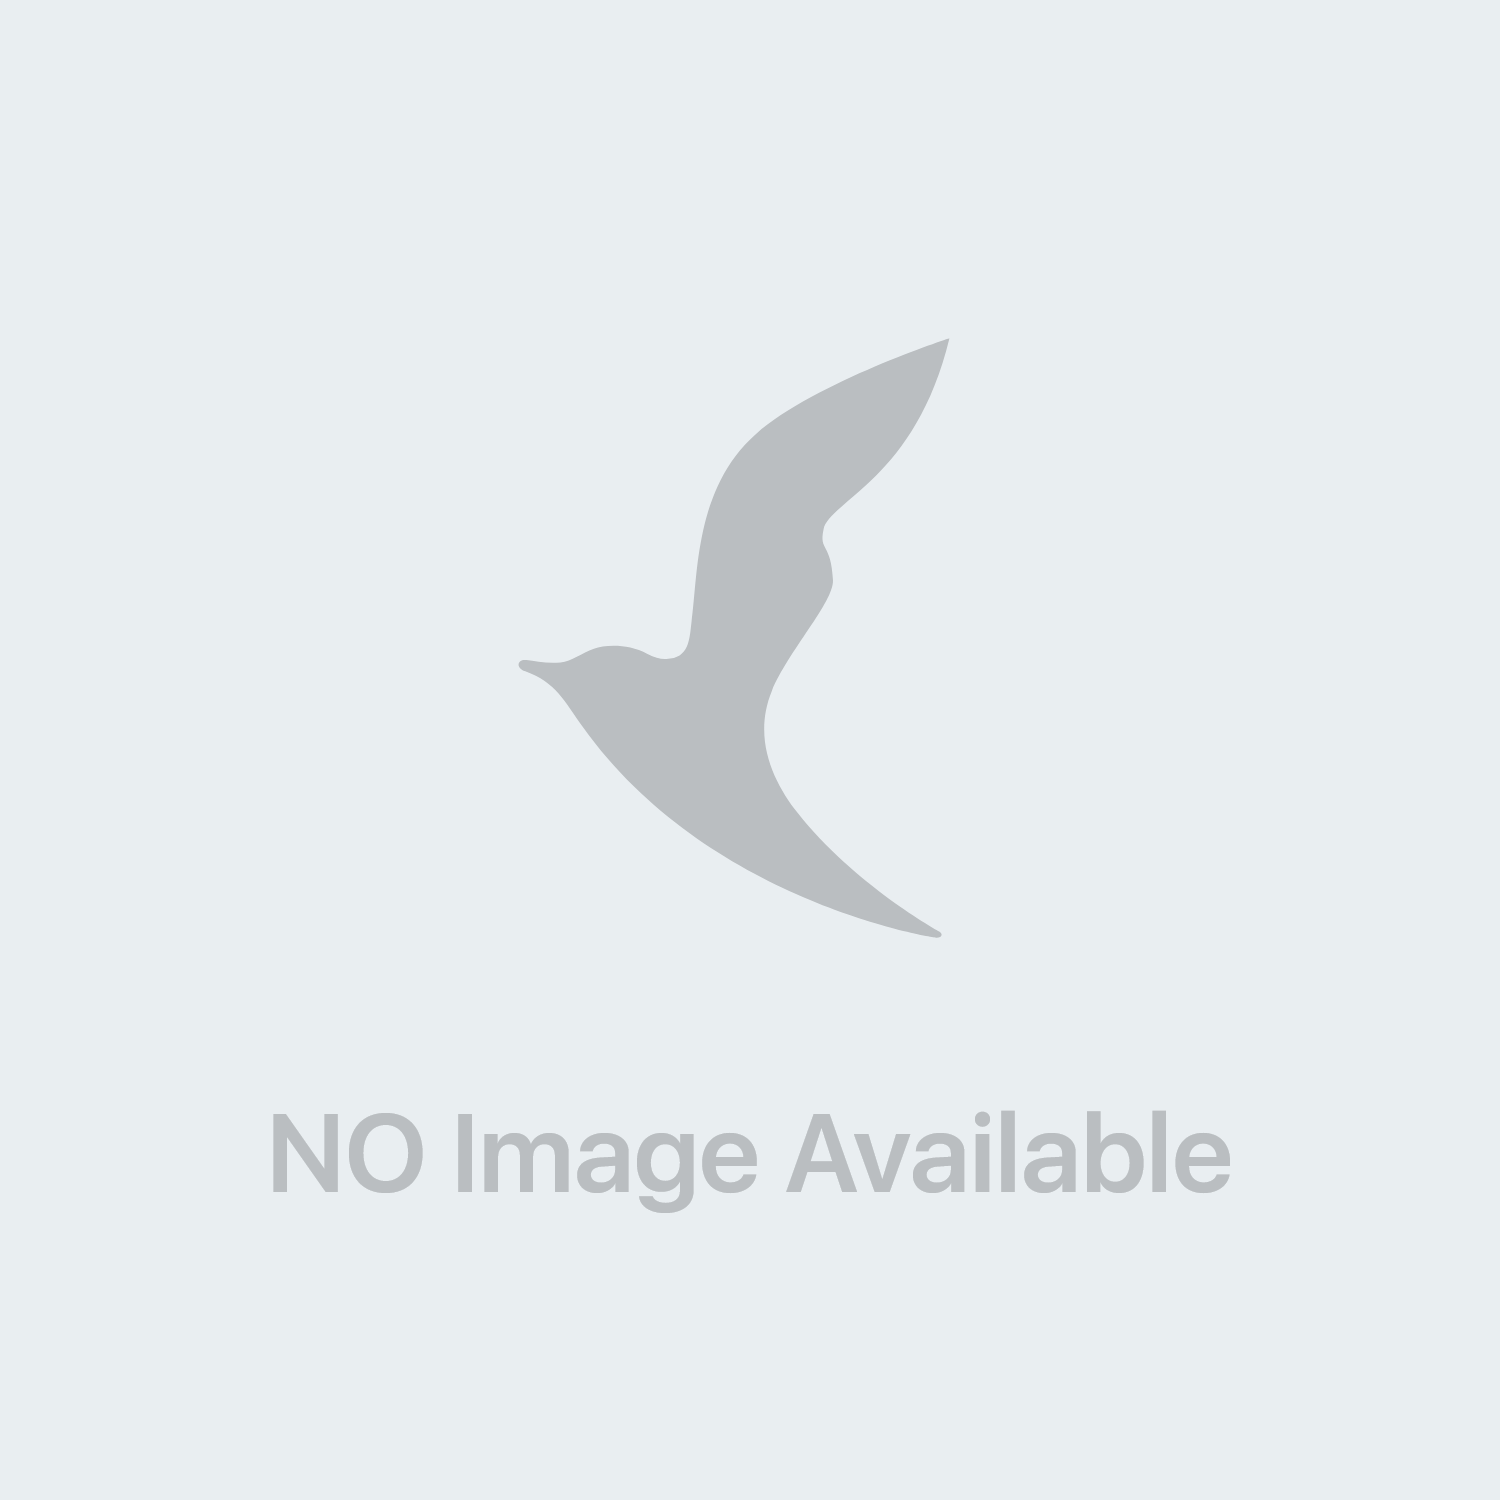 Nifuratel 14 Compresse Vaginali 250 mg